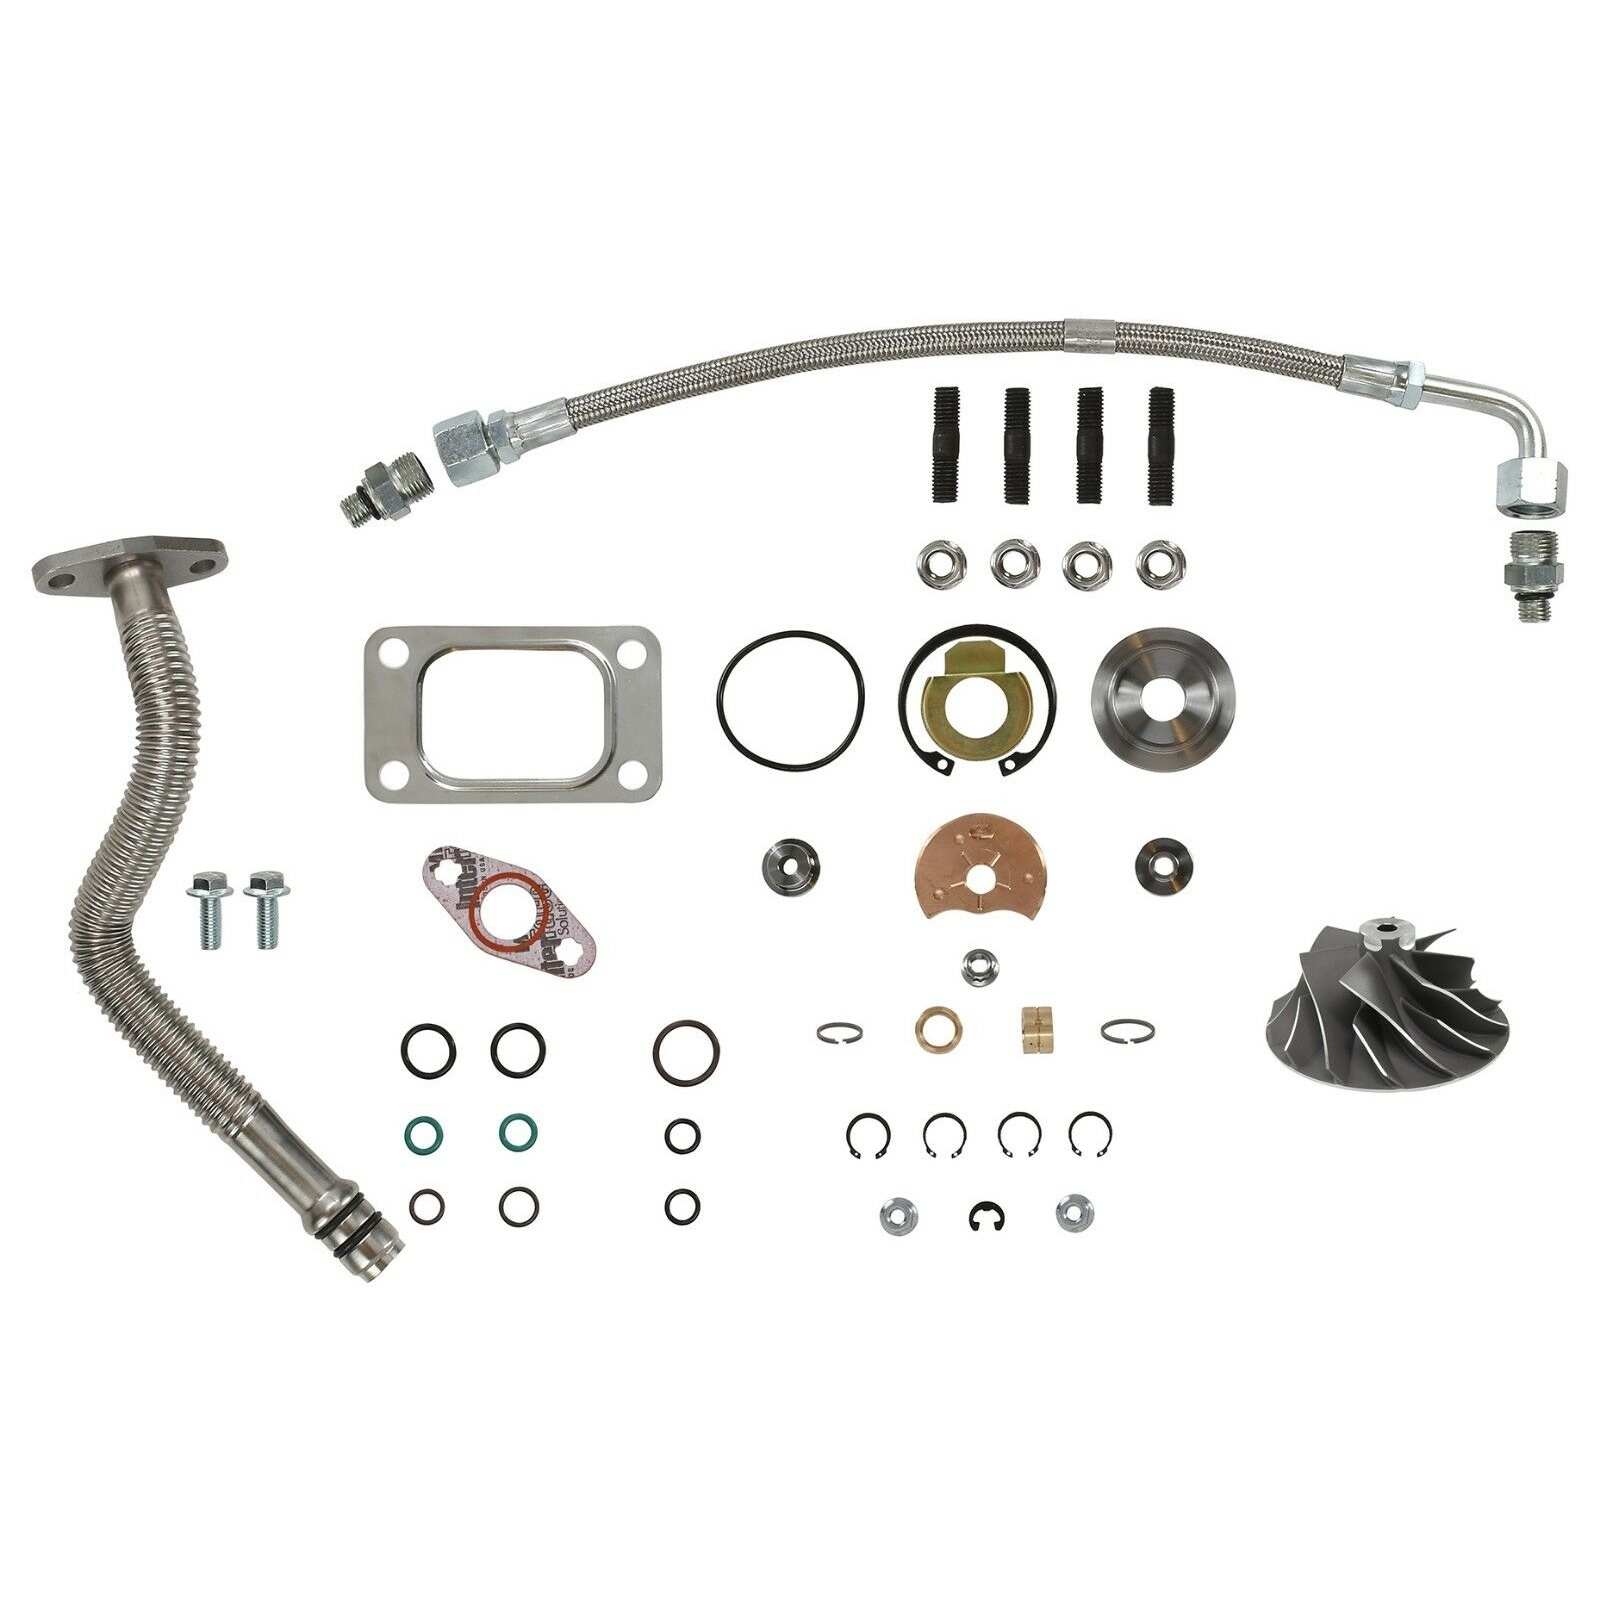 HE351CW Turbo Rebuild Kit Cast Wheel Oil Lines For 04.5-07 5.9L ISB Dodge Ram Cummins Diesel